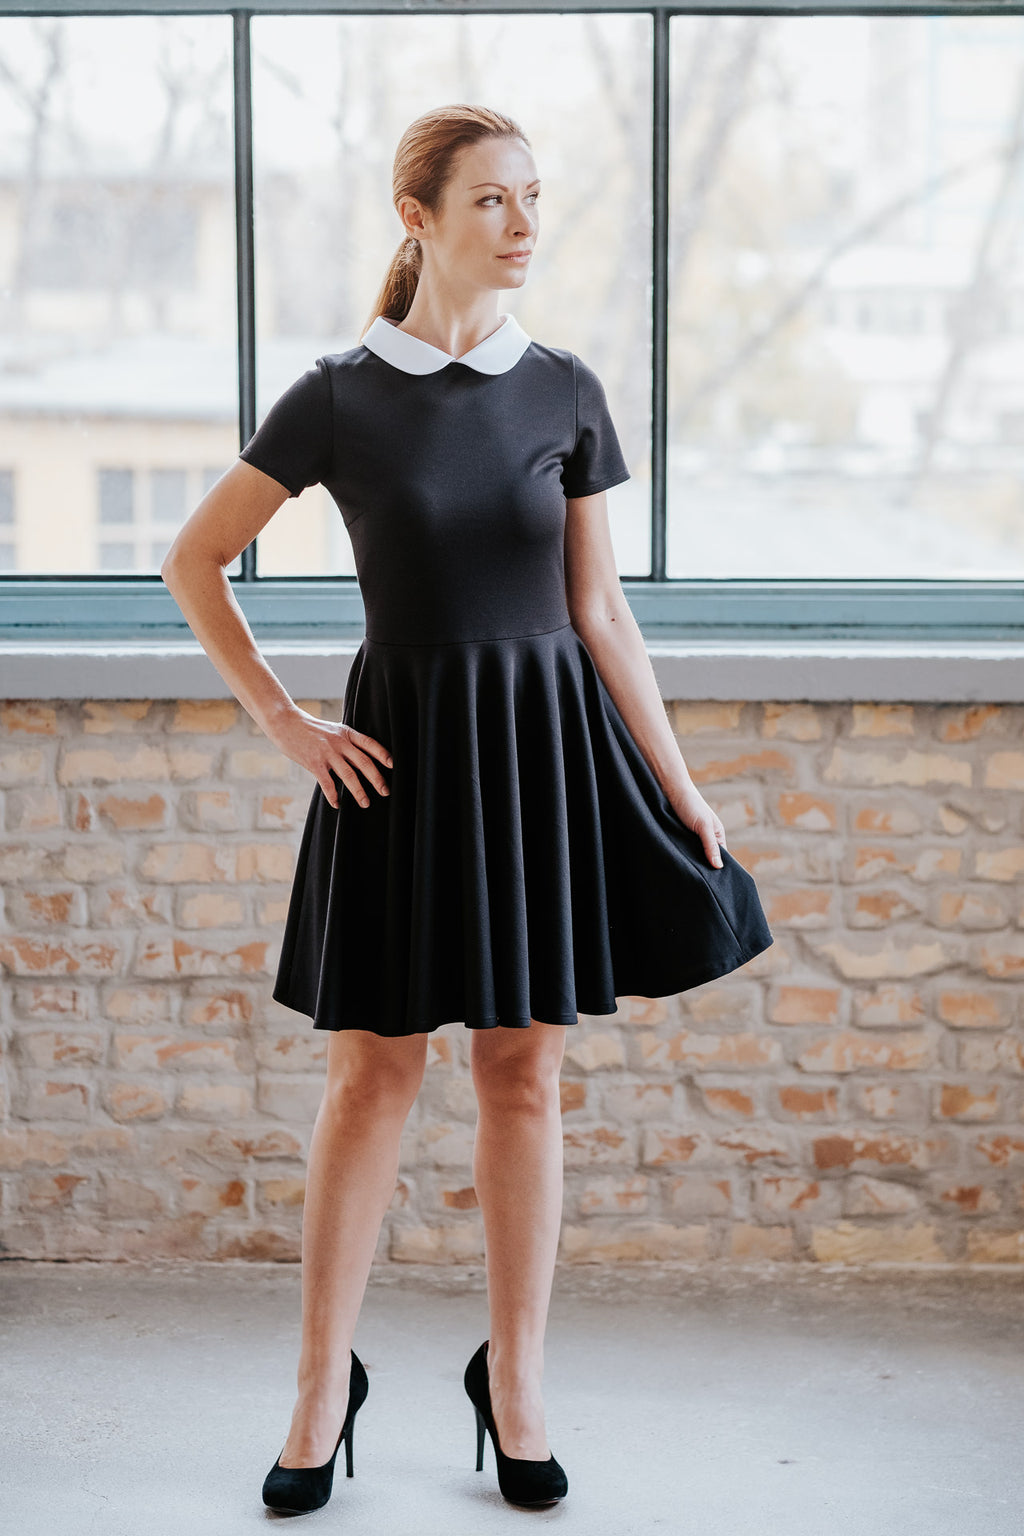 Short sleeve little black dress with white collar in Dress - New York Black Dress